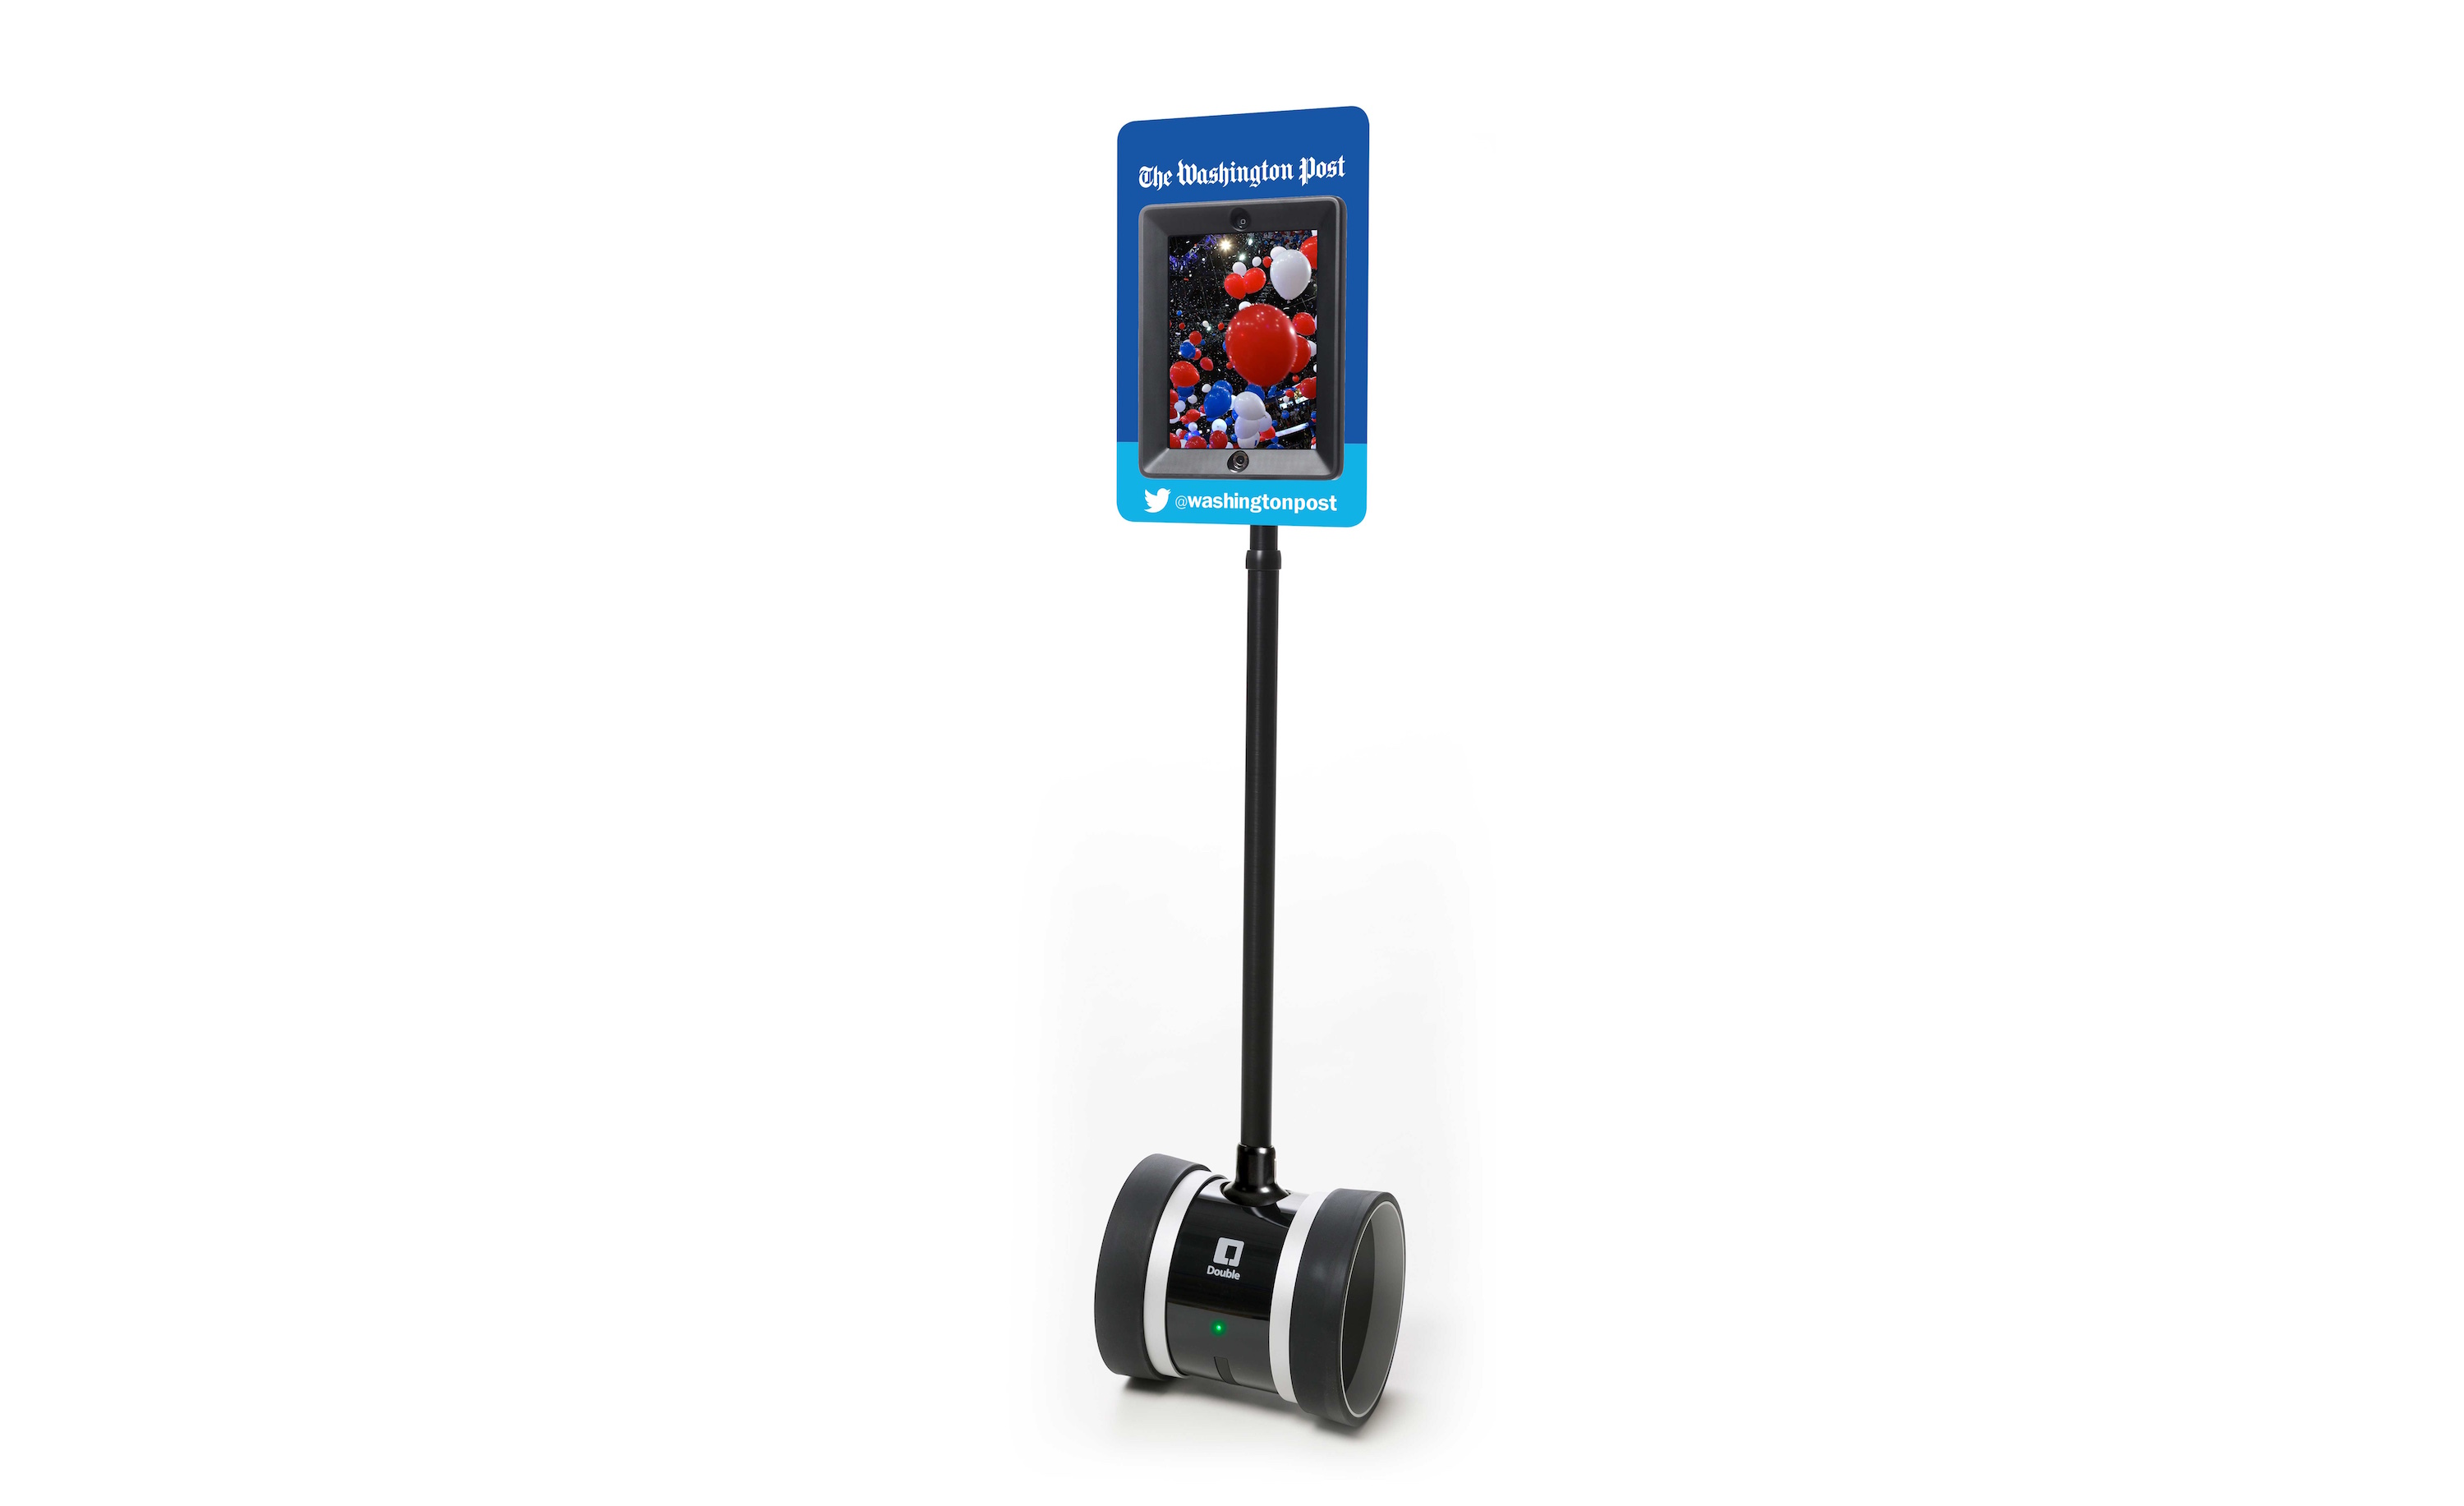 Telepresence robot van The Washington Post